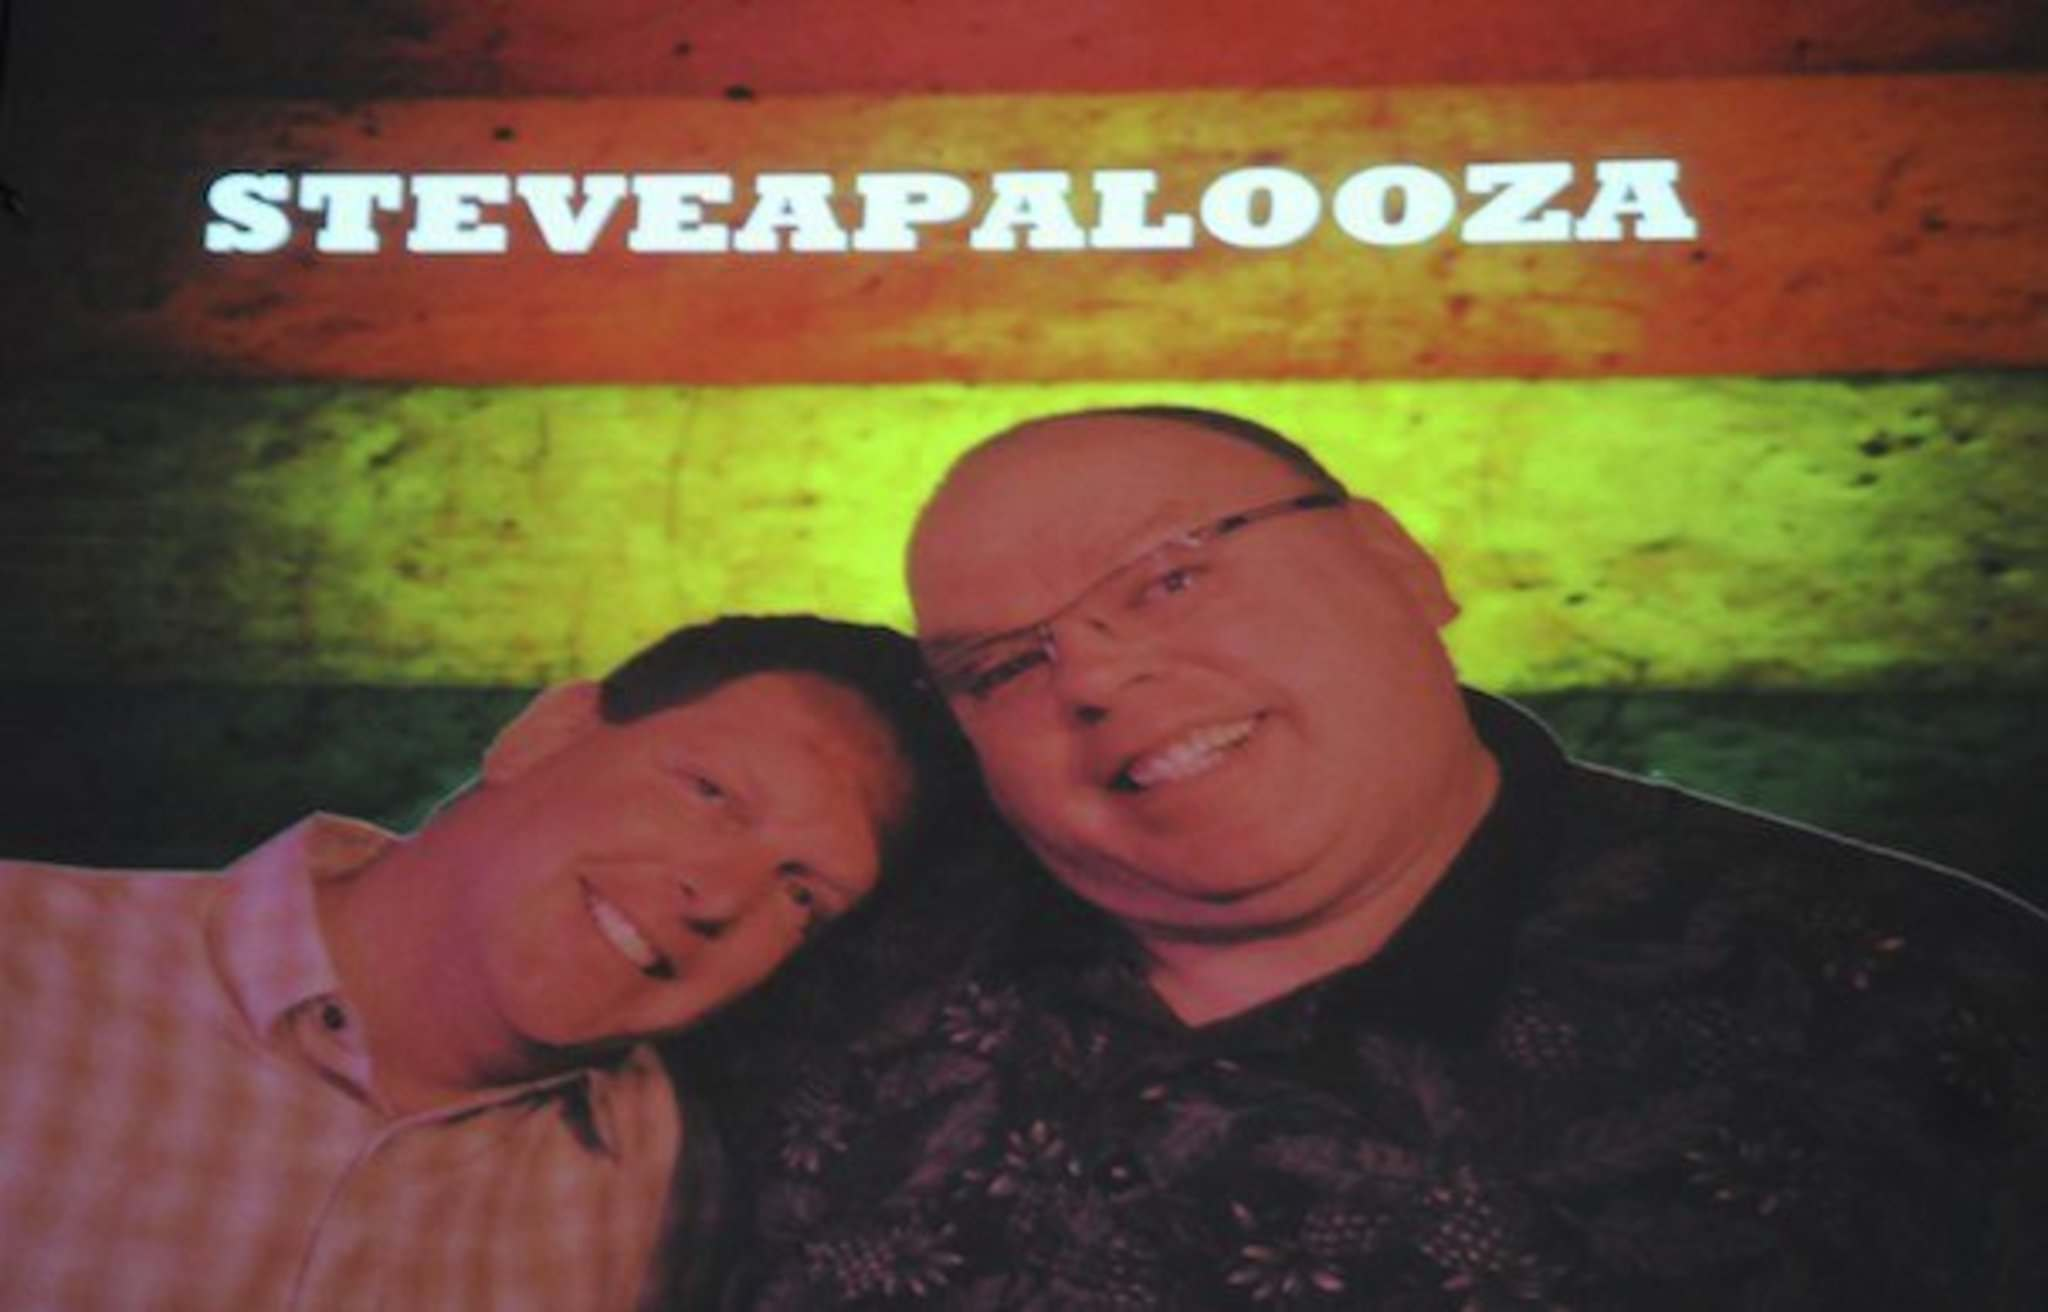 Steveapalooza was Vogelsang's going-away party from Winnipeg and it was entirely his idea.